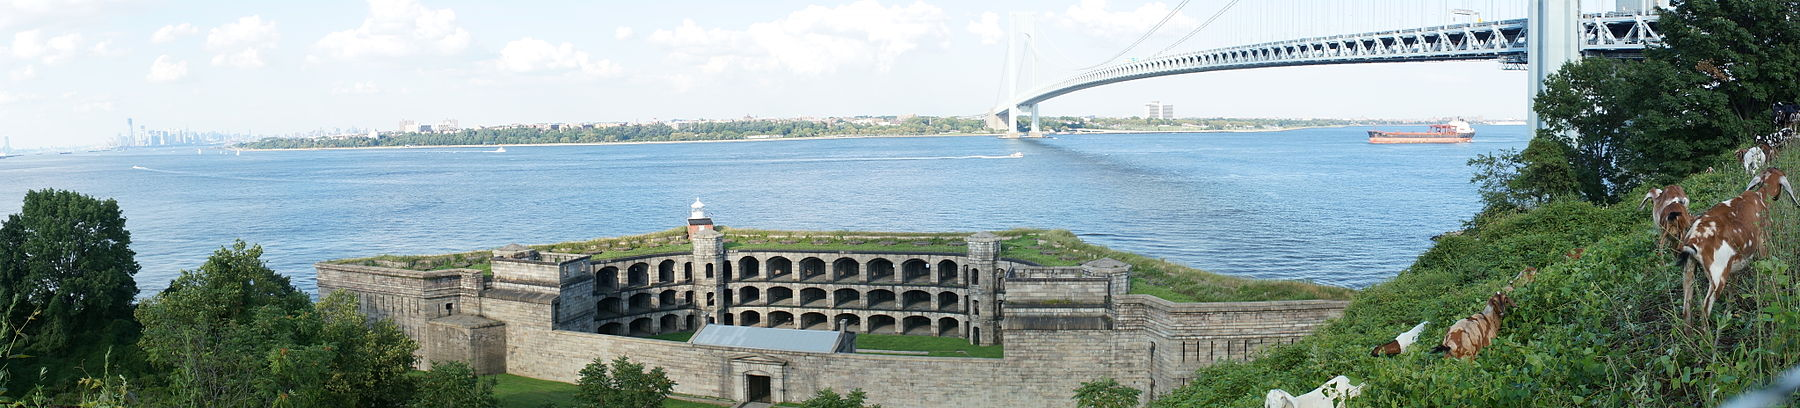 Fort Wadsworth